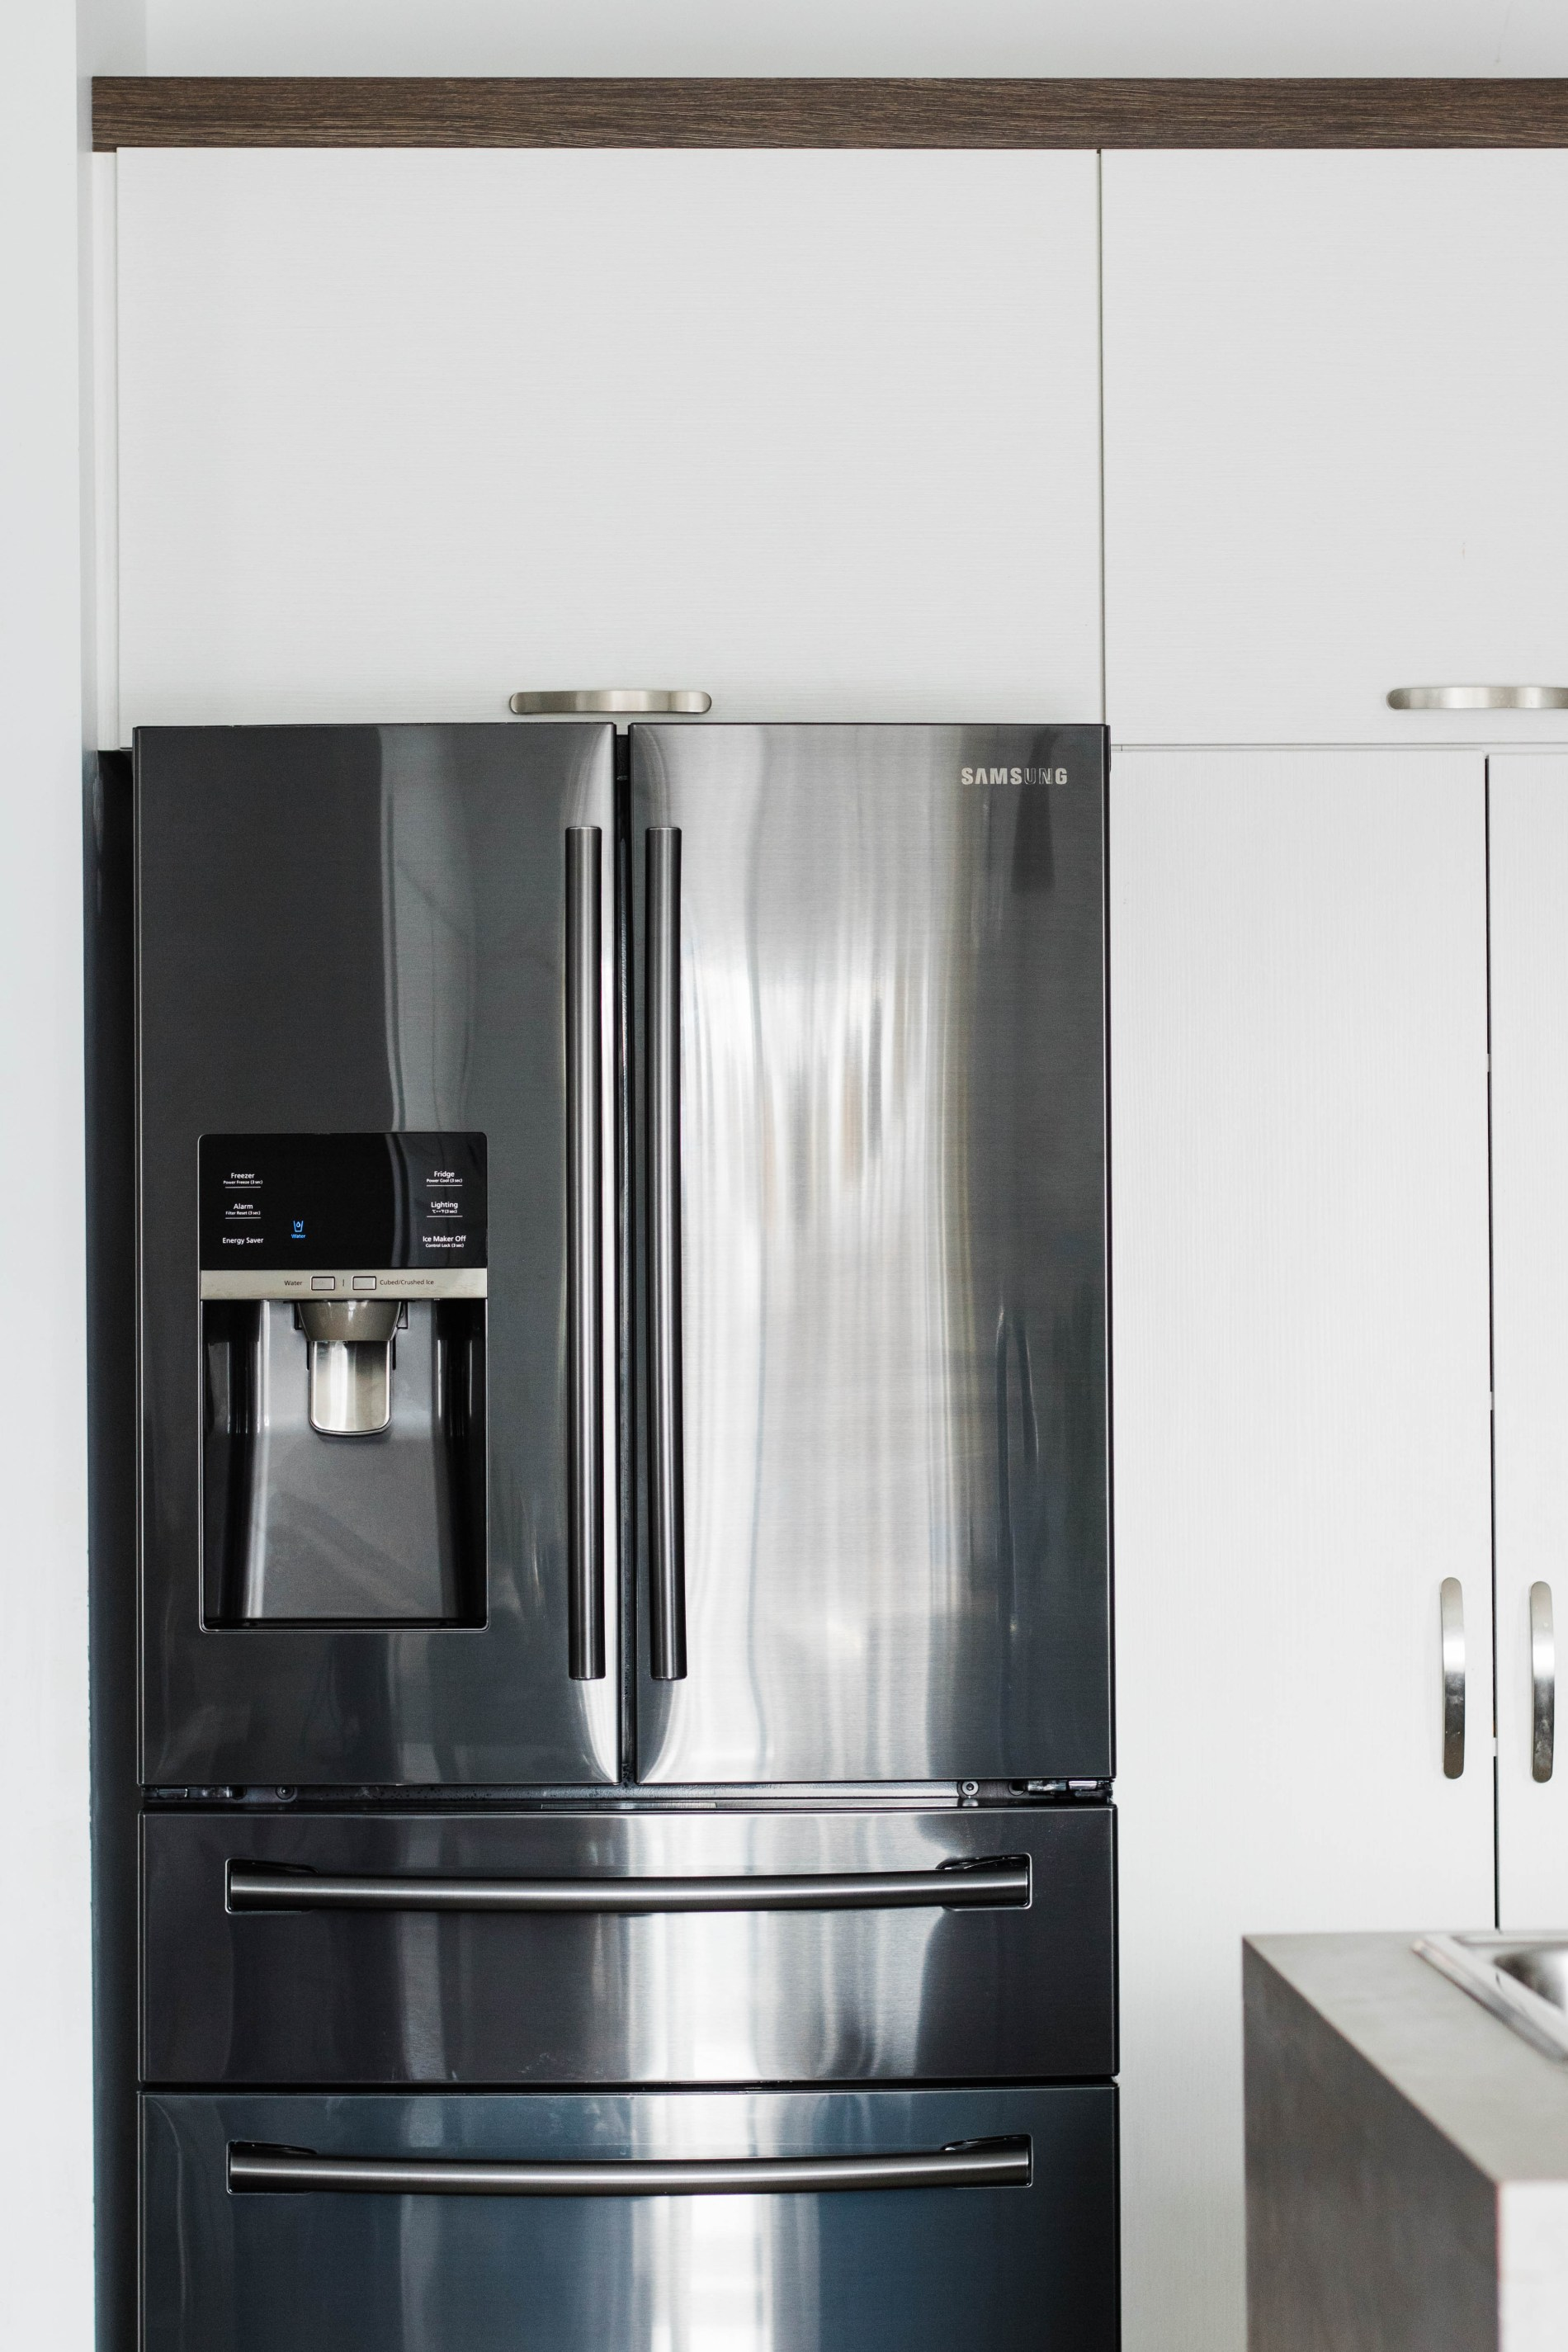 Kitchen Update— Black Stainless Steel Appliance. #samsung #kitchen #homedecor #kitchenphotography